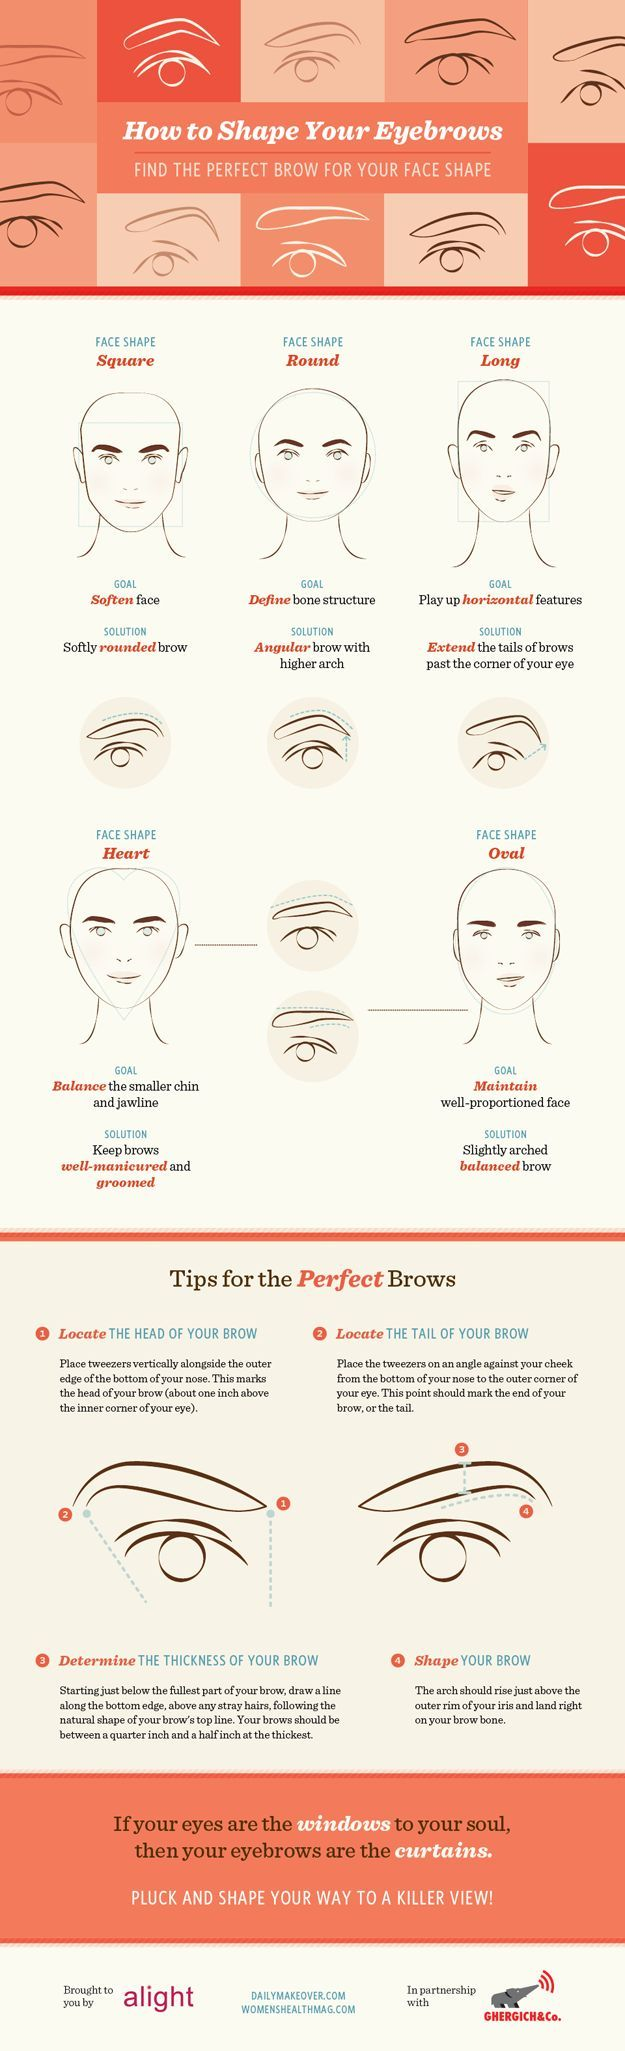 Best Brows for Your Face Shape | Eyebrow Shaping Tutorial - DIY Eyebrow Plucking Tips by Makeup Tutorials at http://makeuptutorials.com/makeup-tutorials-beauty-tips